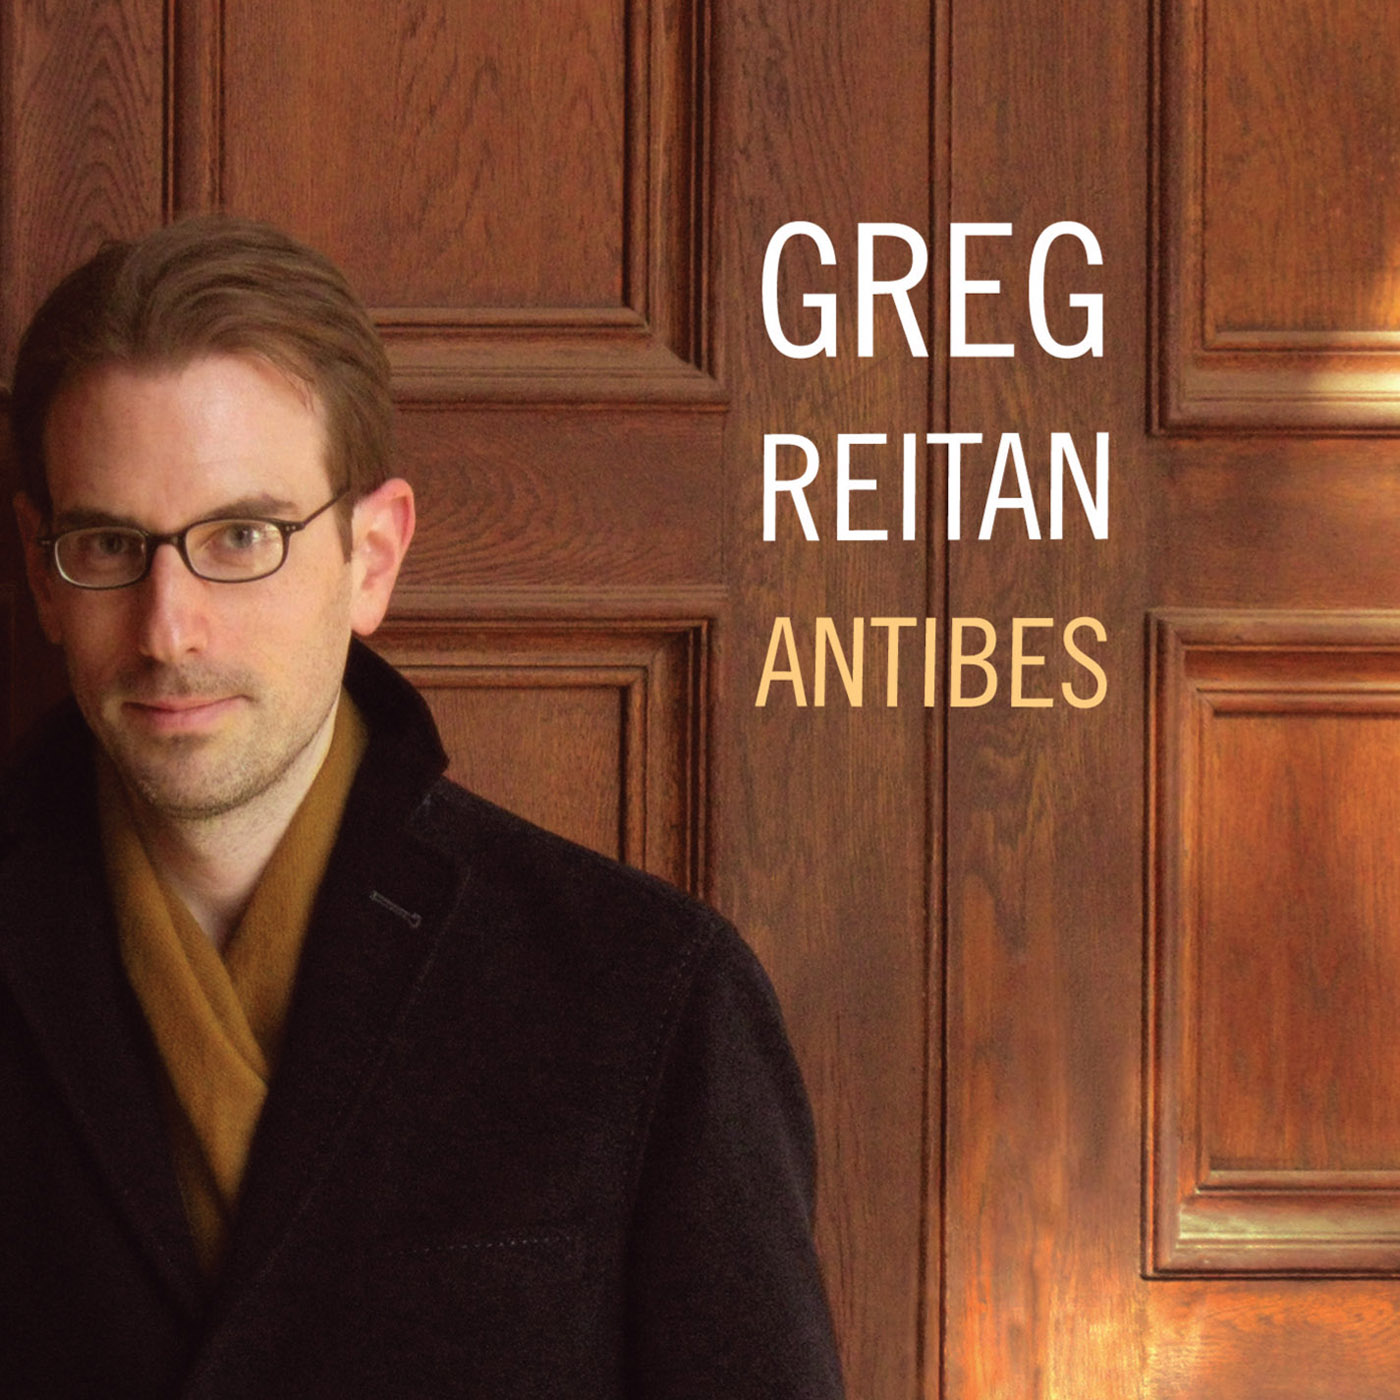 Antibes by Greg Reitan cover